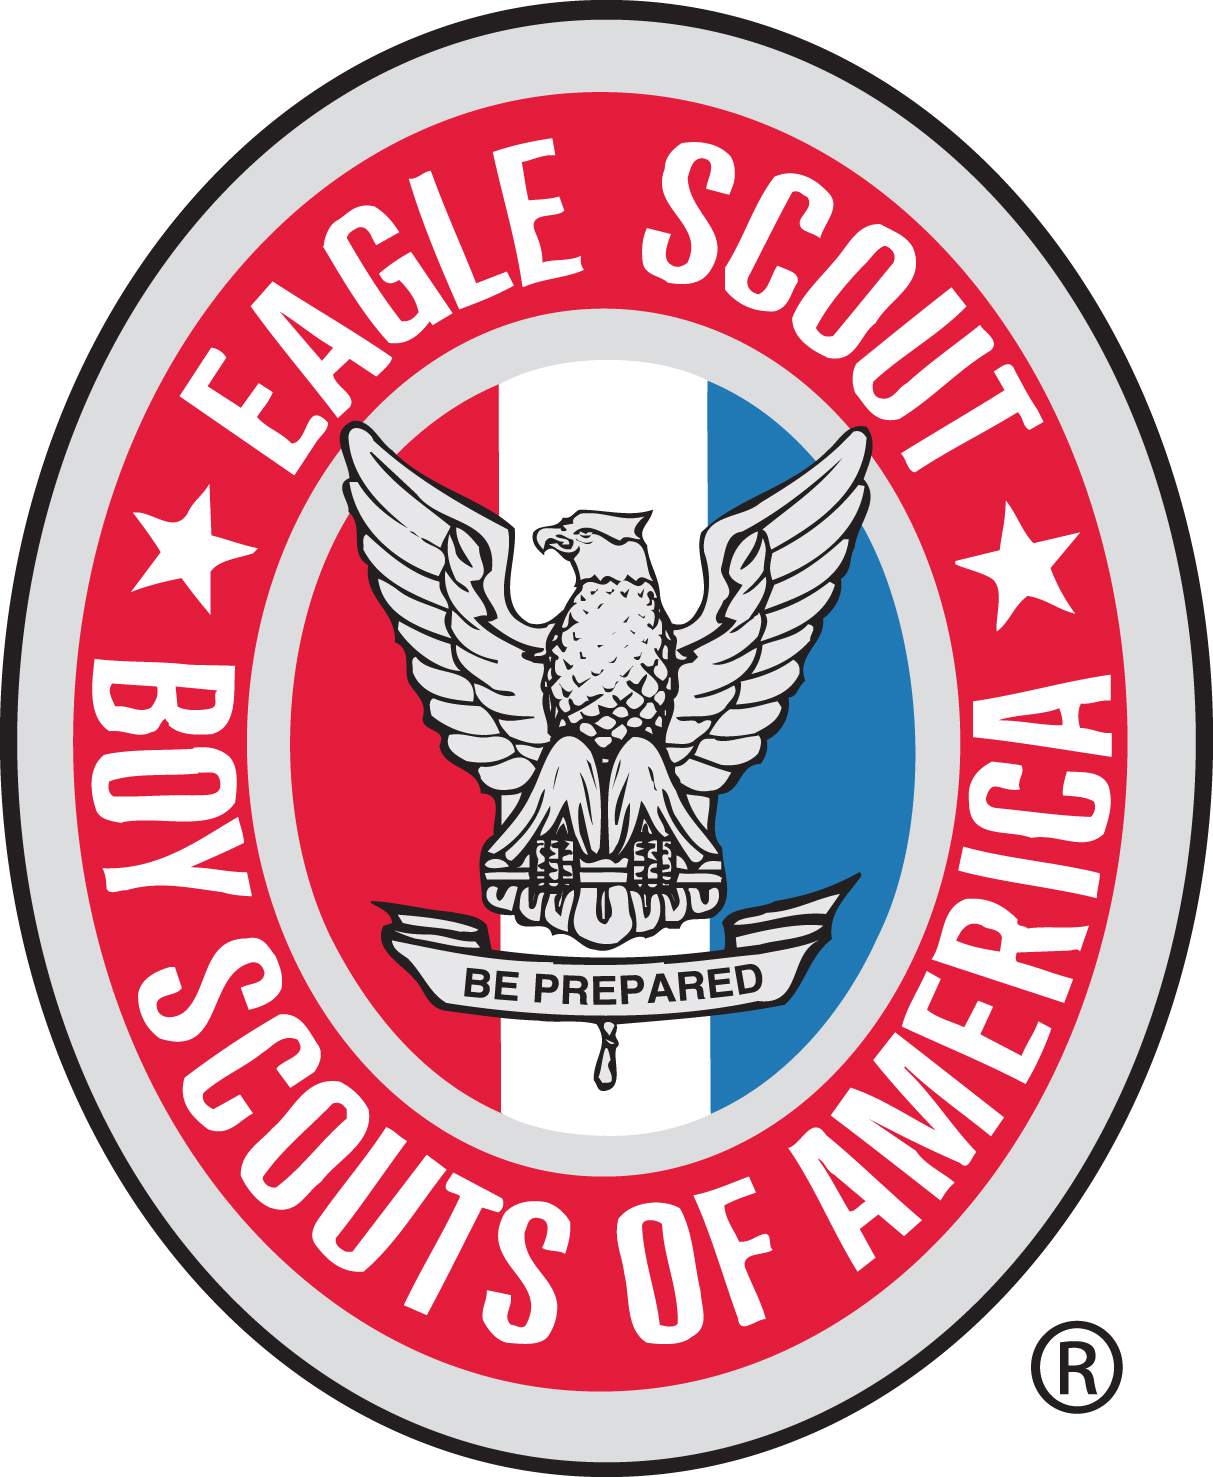 ... Clipart; Large Eagle Scout Badge and-... Clipart; Large Eagle Scout Badge and Medal Image for Presentations; Badges, Eagles and Dylan Ou0026#39;Brien ...-13